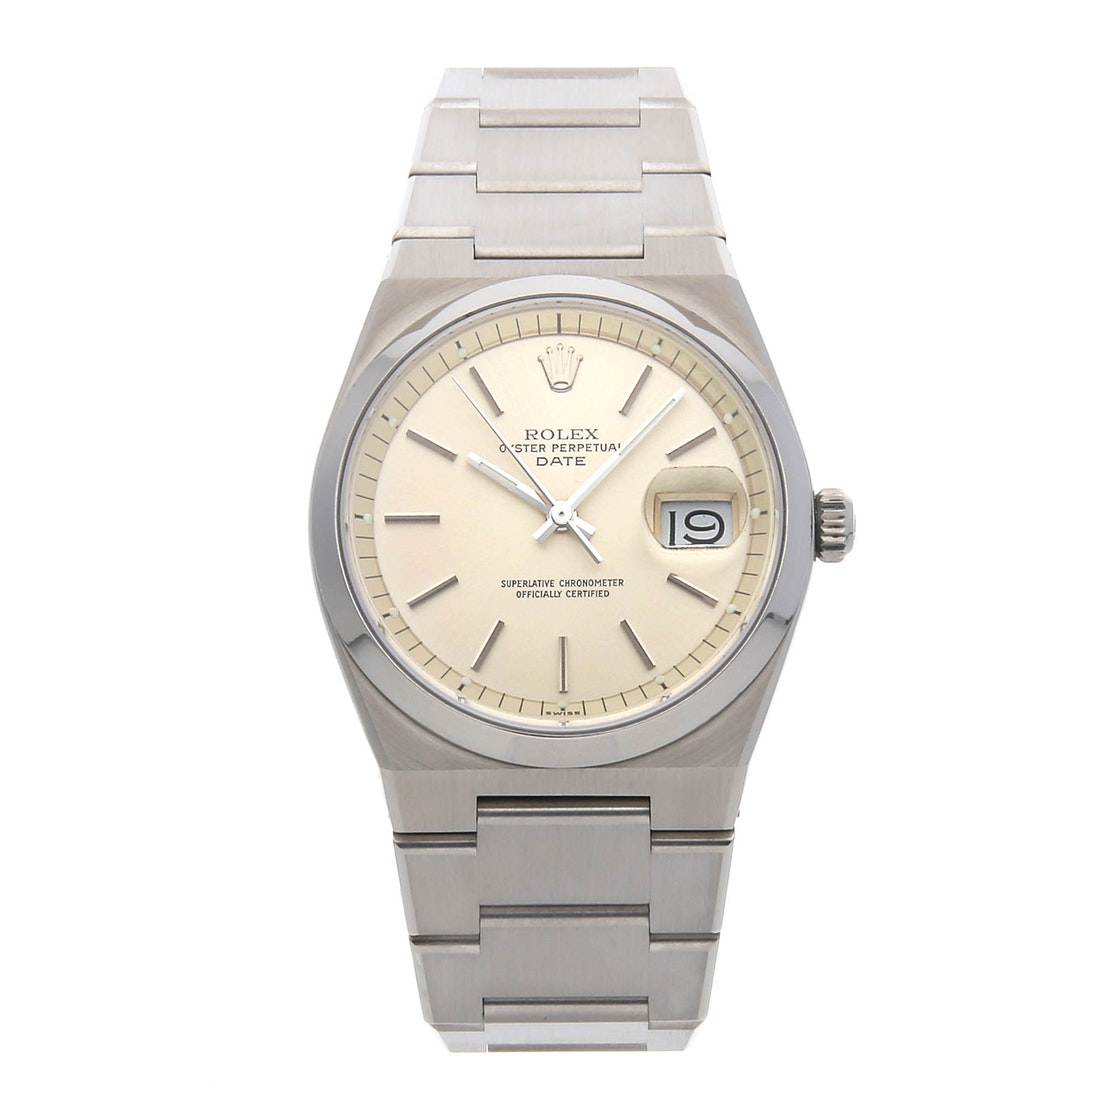 Rolex Vintage Oyster Perpetual Date 1530